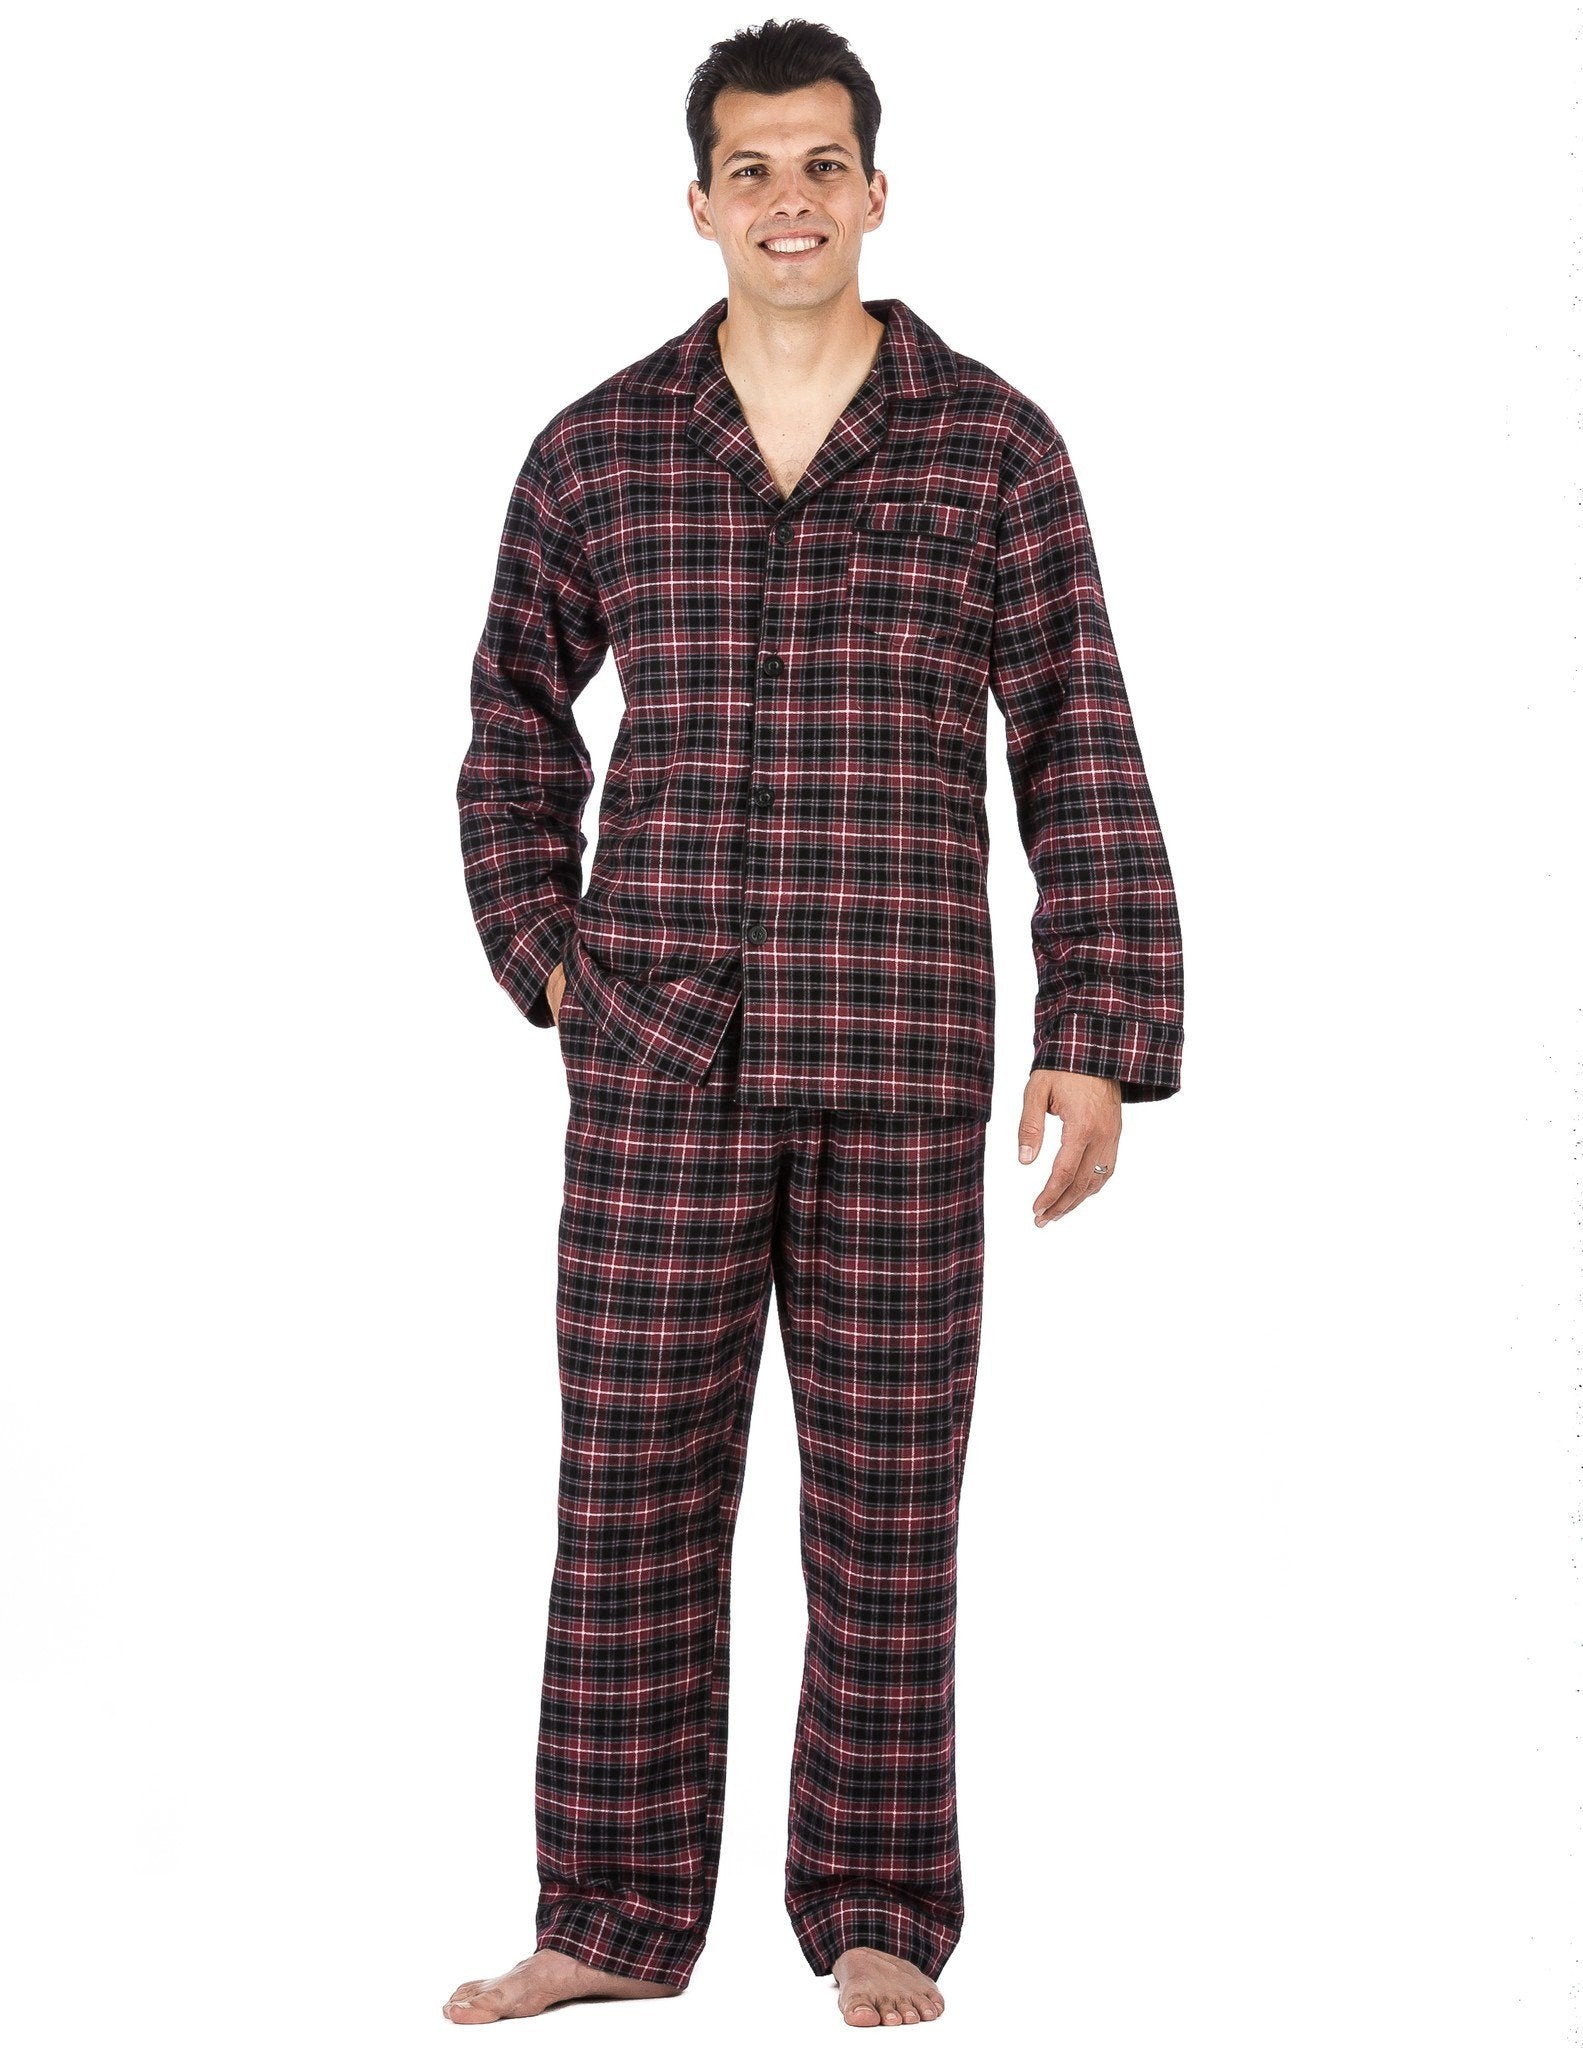 Relaxed Fit Men's Premium 100% Cotton Flannel Pajama Sleepwear Set - Burgundy/Grey Plaid